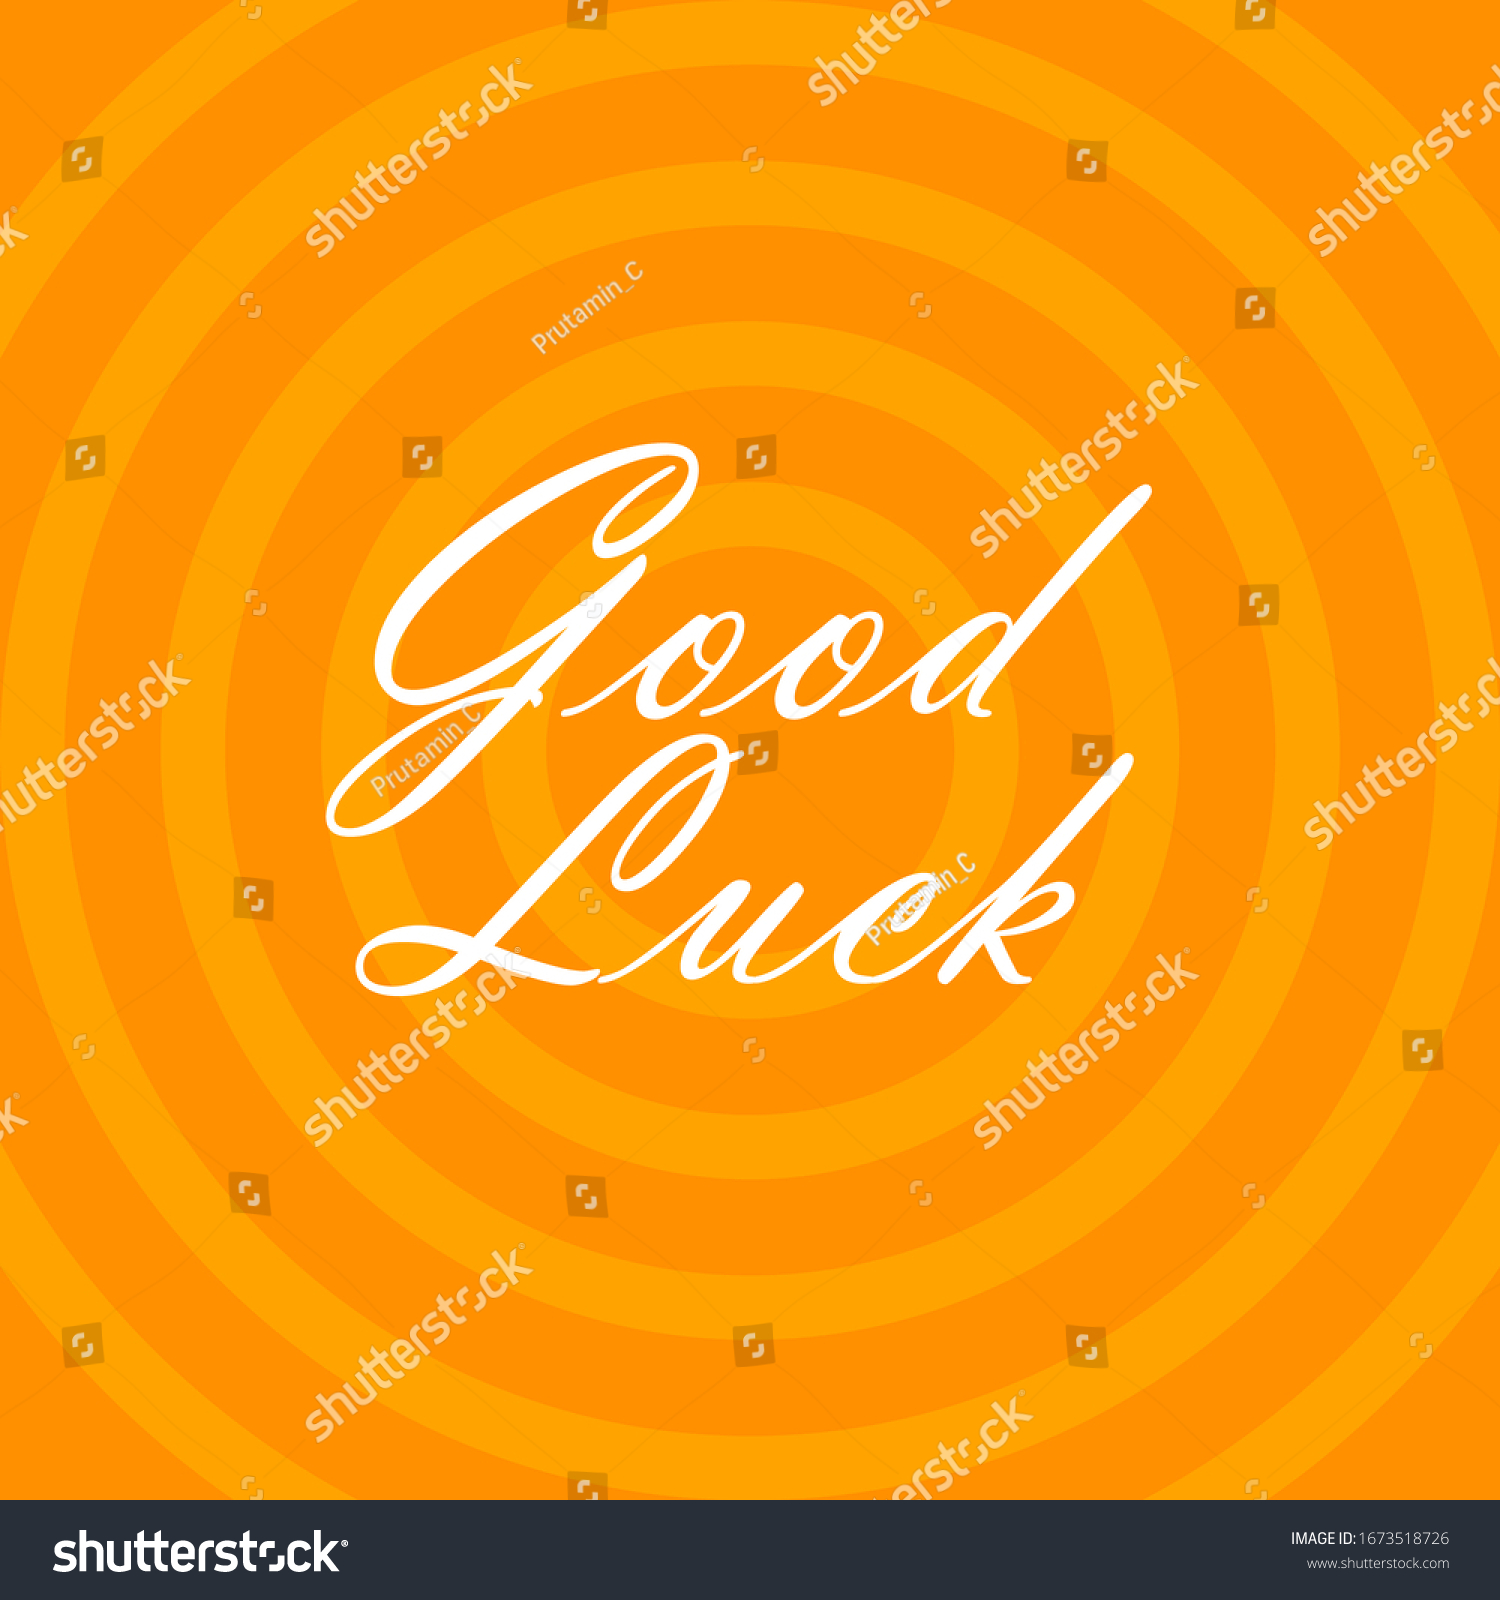 stock-vector-good-luck-beautiful-greetin